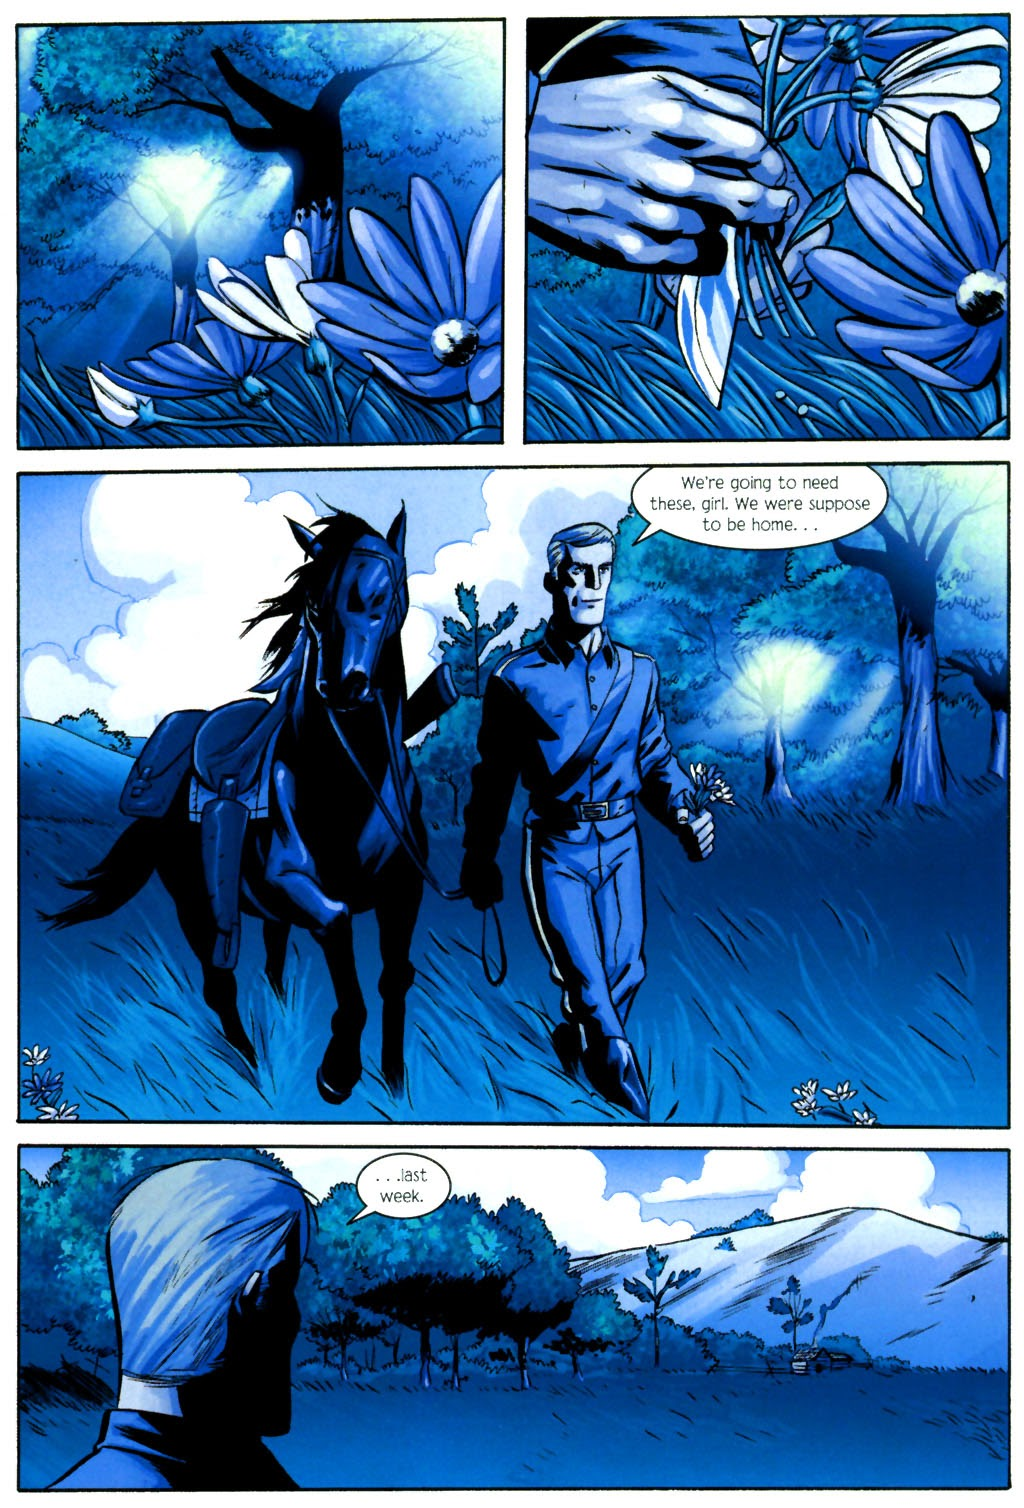 Read online The Ballad of Sleeping Beauty comic -  Issue #1 - 9